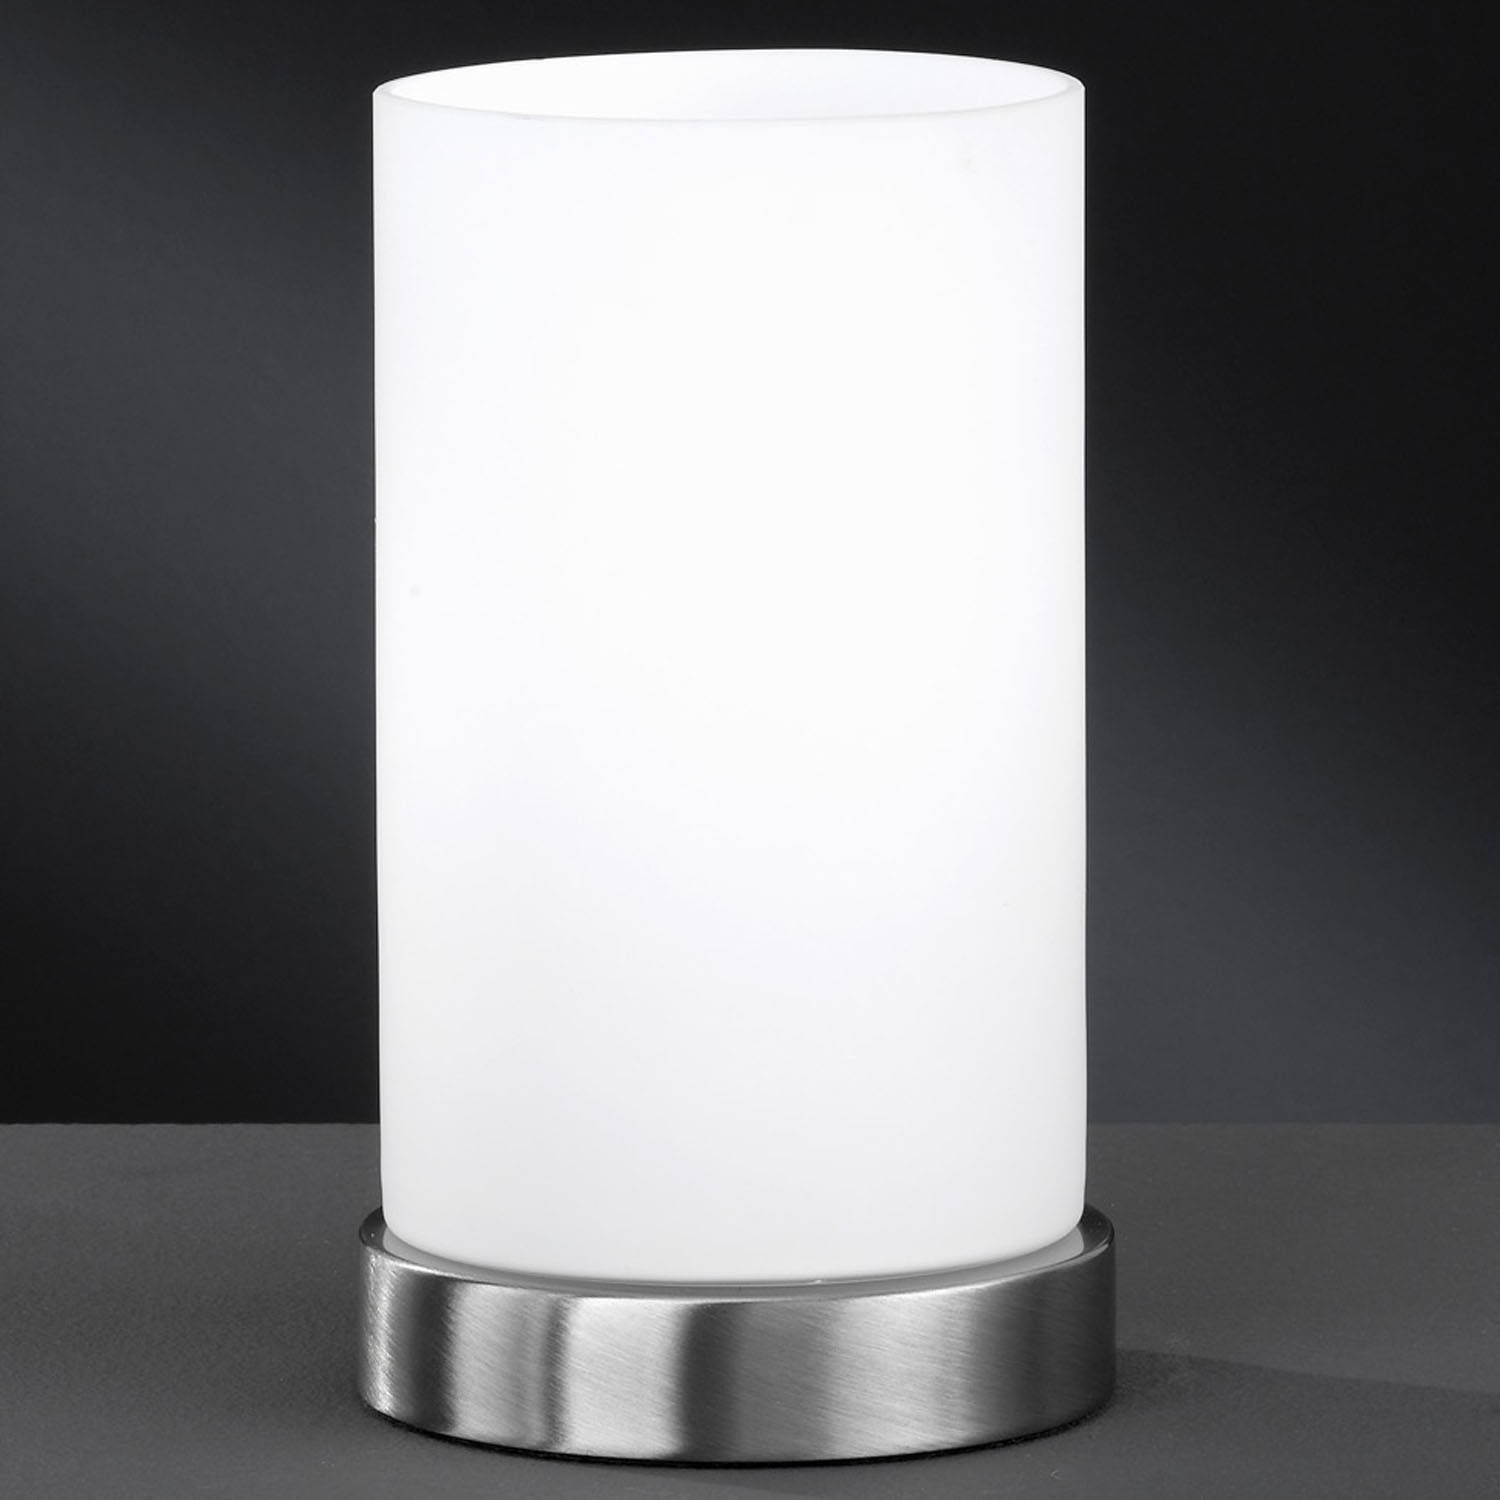 Table lamp touch -  Touch Table Lamp Warisan Lighting